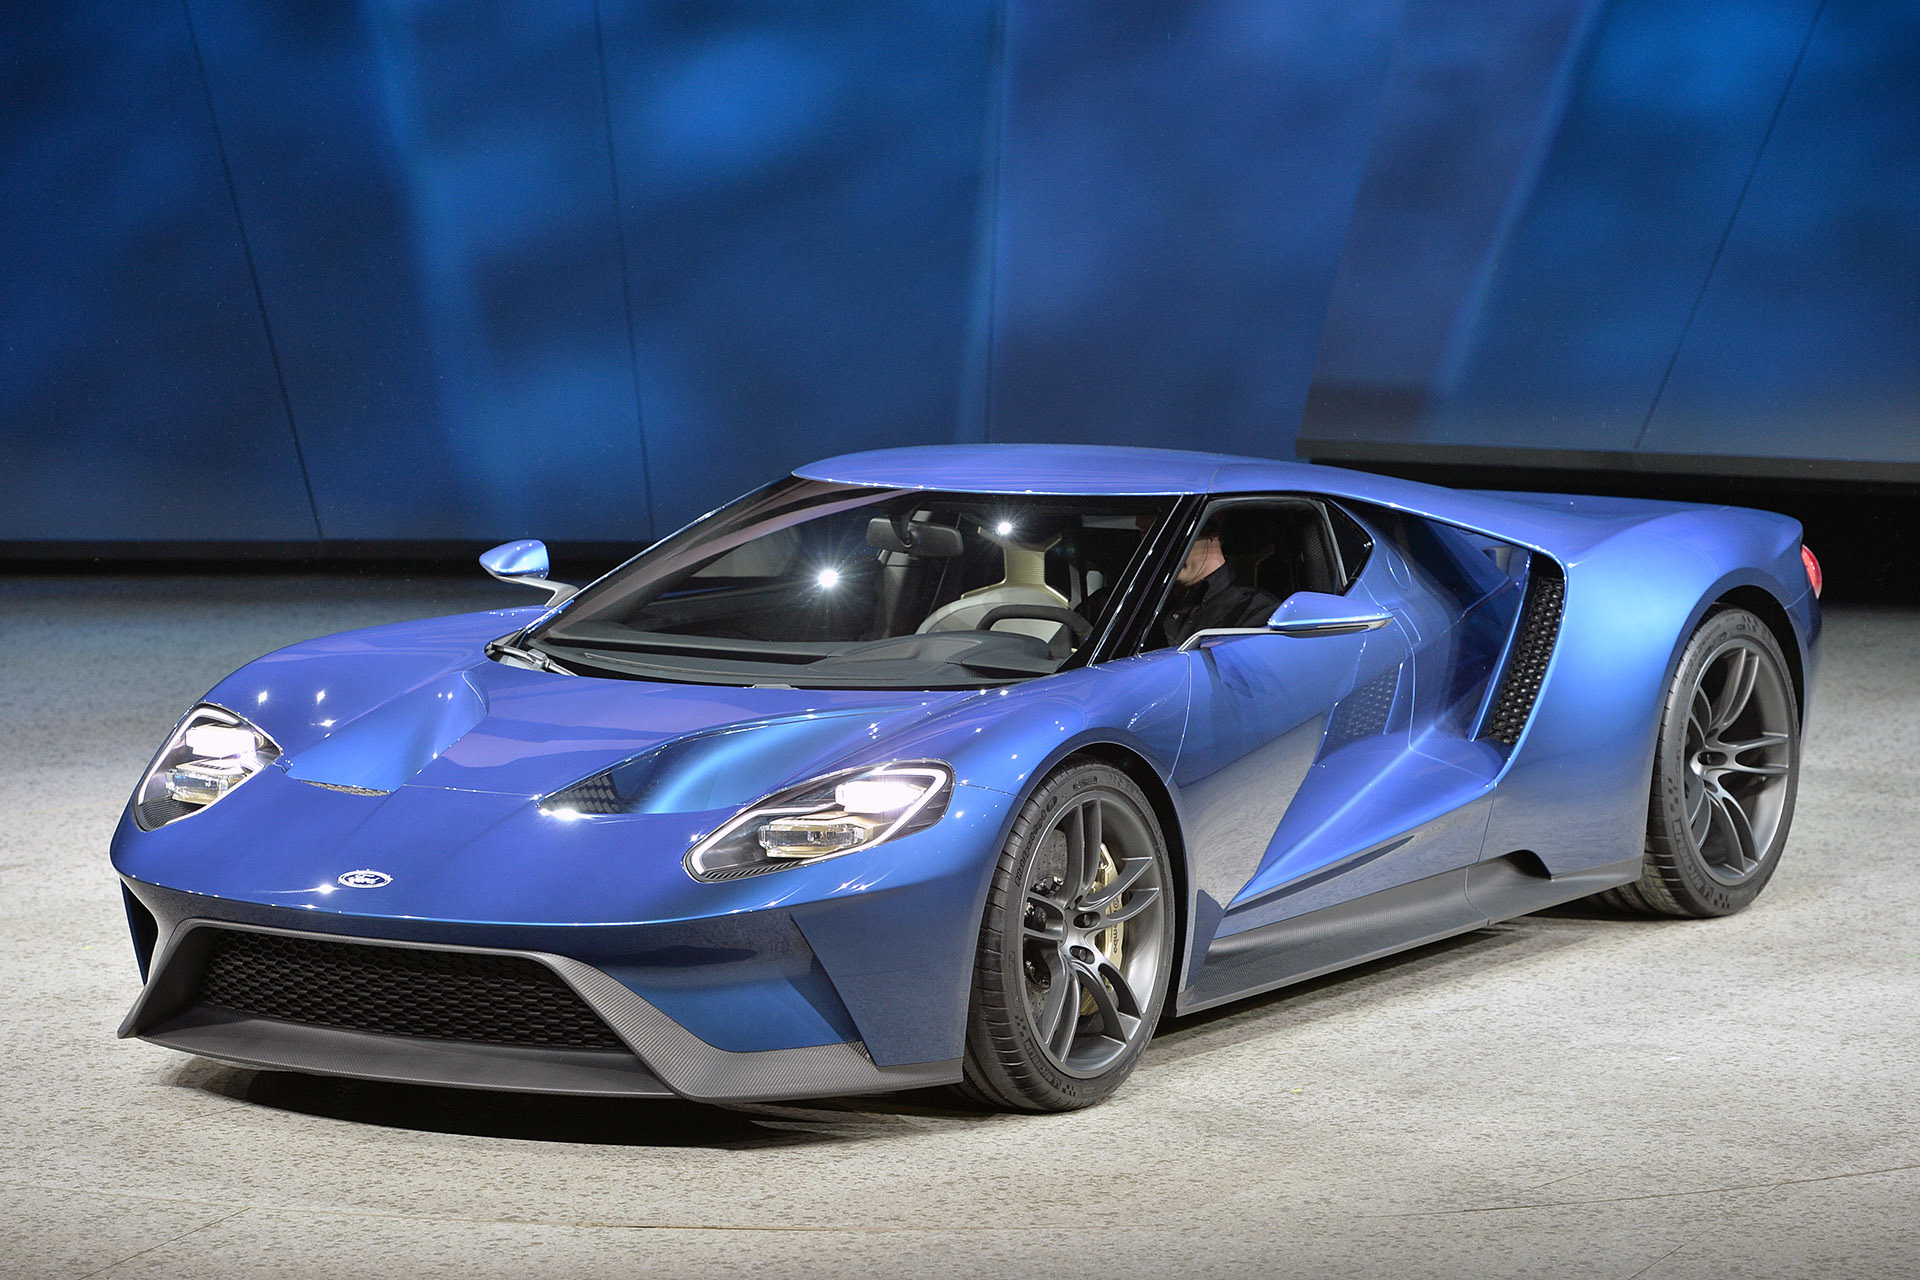 2016 ford gt sport blue wallpaper 2017 ford gt concept car beautiful - 03 Ford Gt Concept Detroit 1